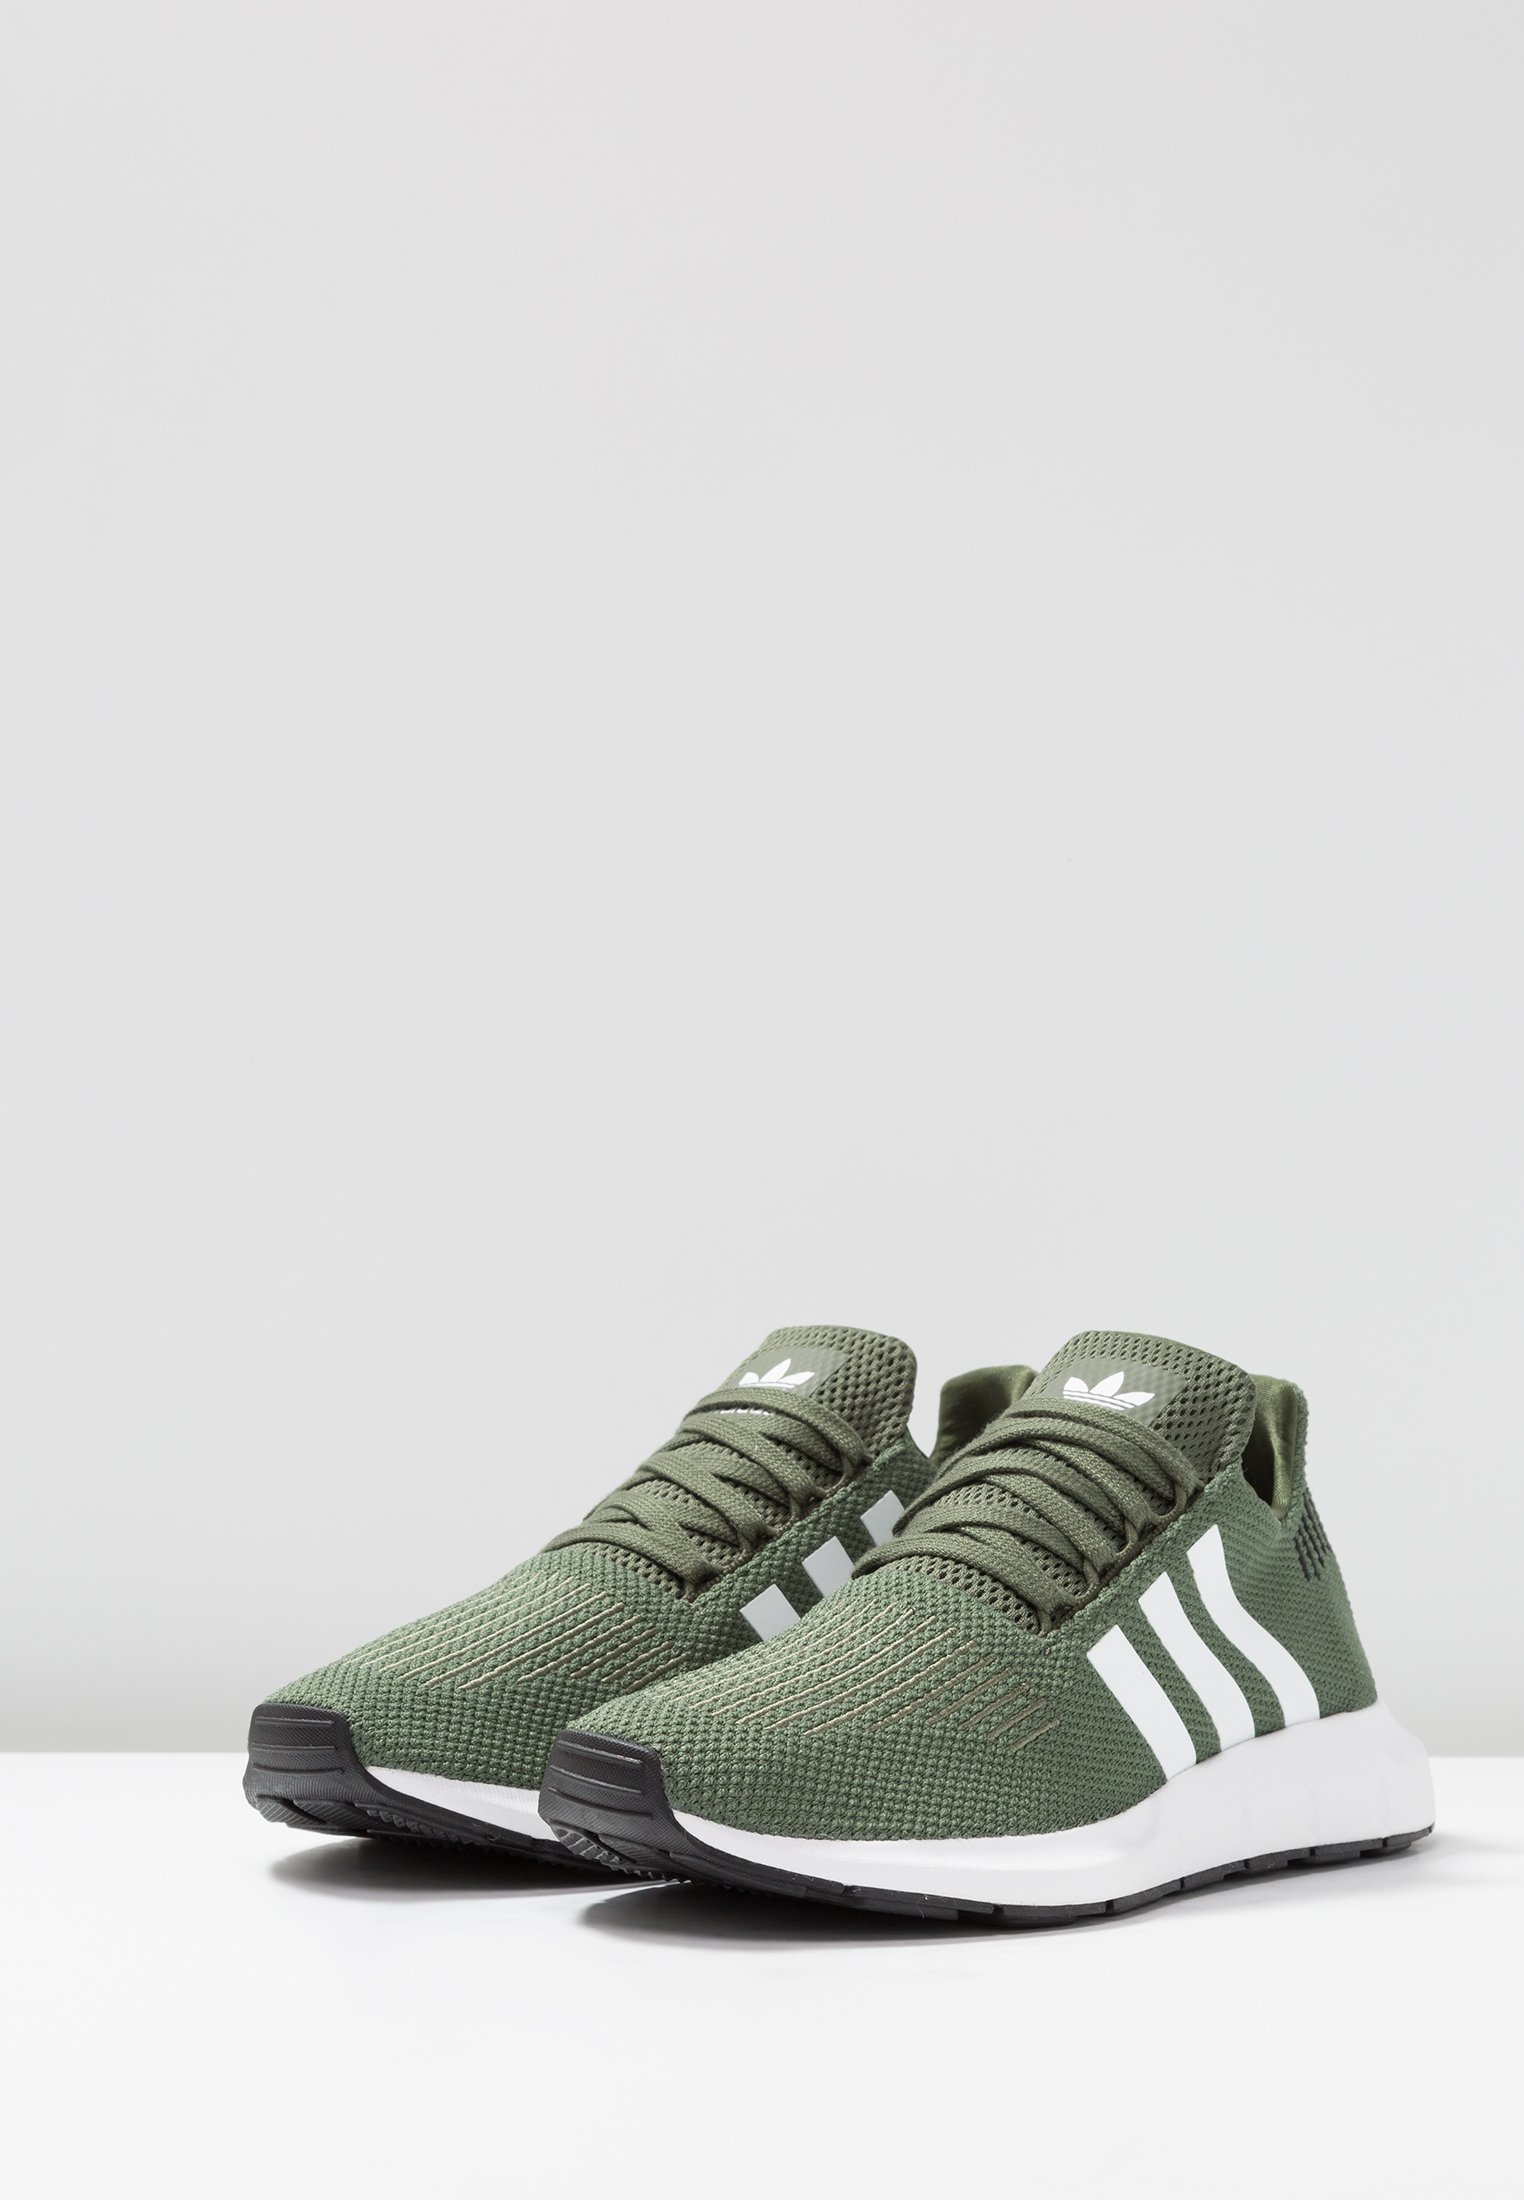 adidas Originals SWIFT RUN Sneaker low base green/footwear white/core black/oliv